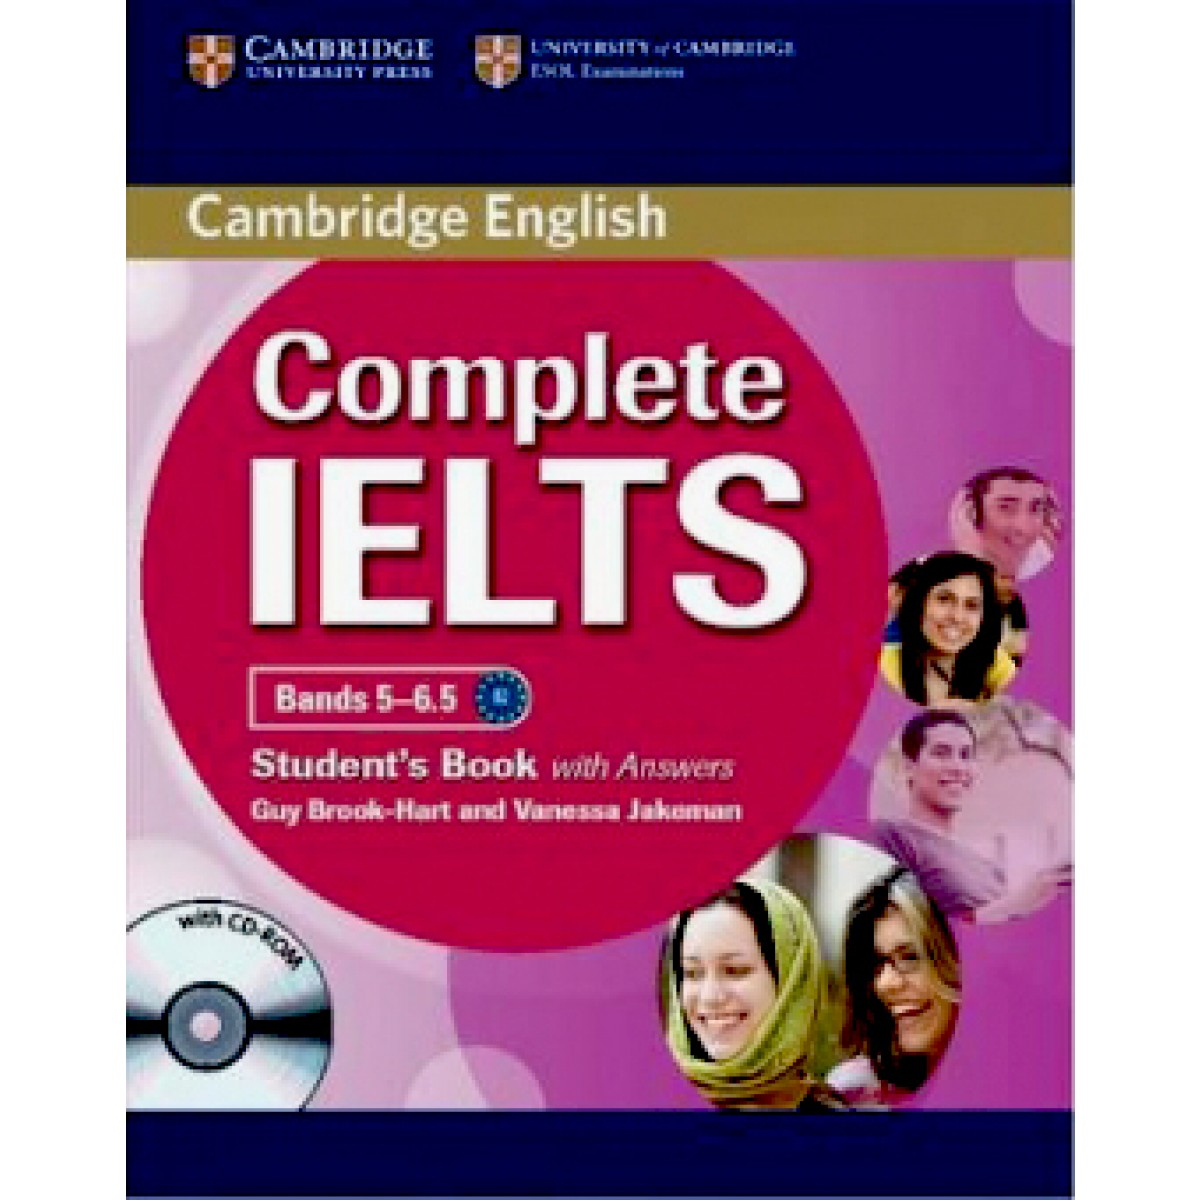 خرید کتاب CAMBRIDGE English Complete IELTS B2